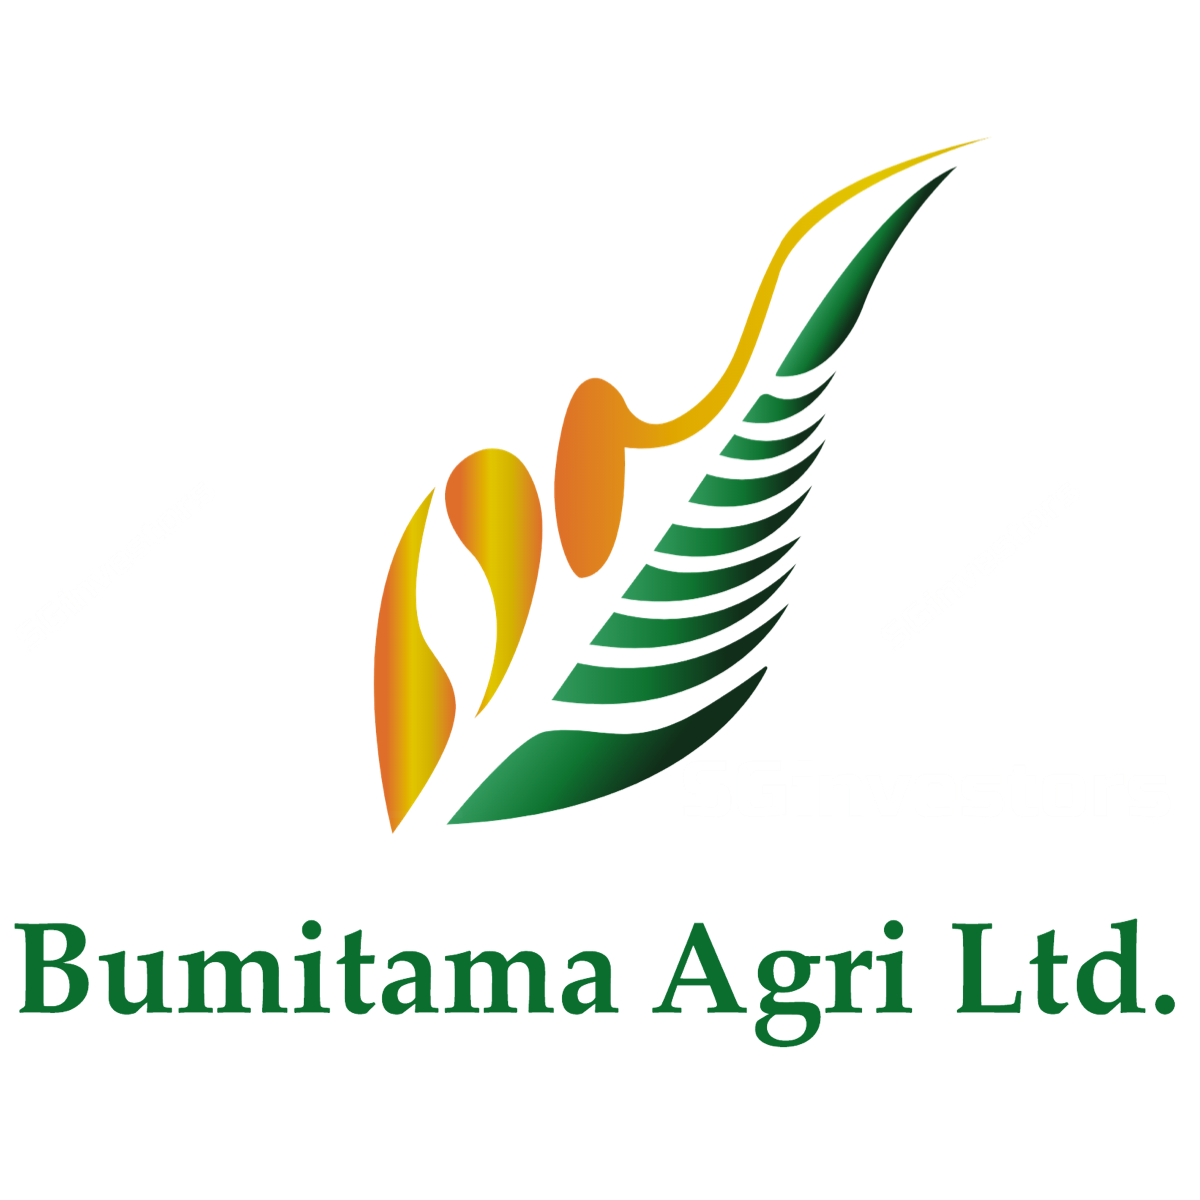 Bumitama Agri (BAL SP) - Maybank Kim Eng 2017-11-14: Delivering Results